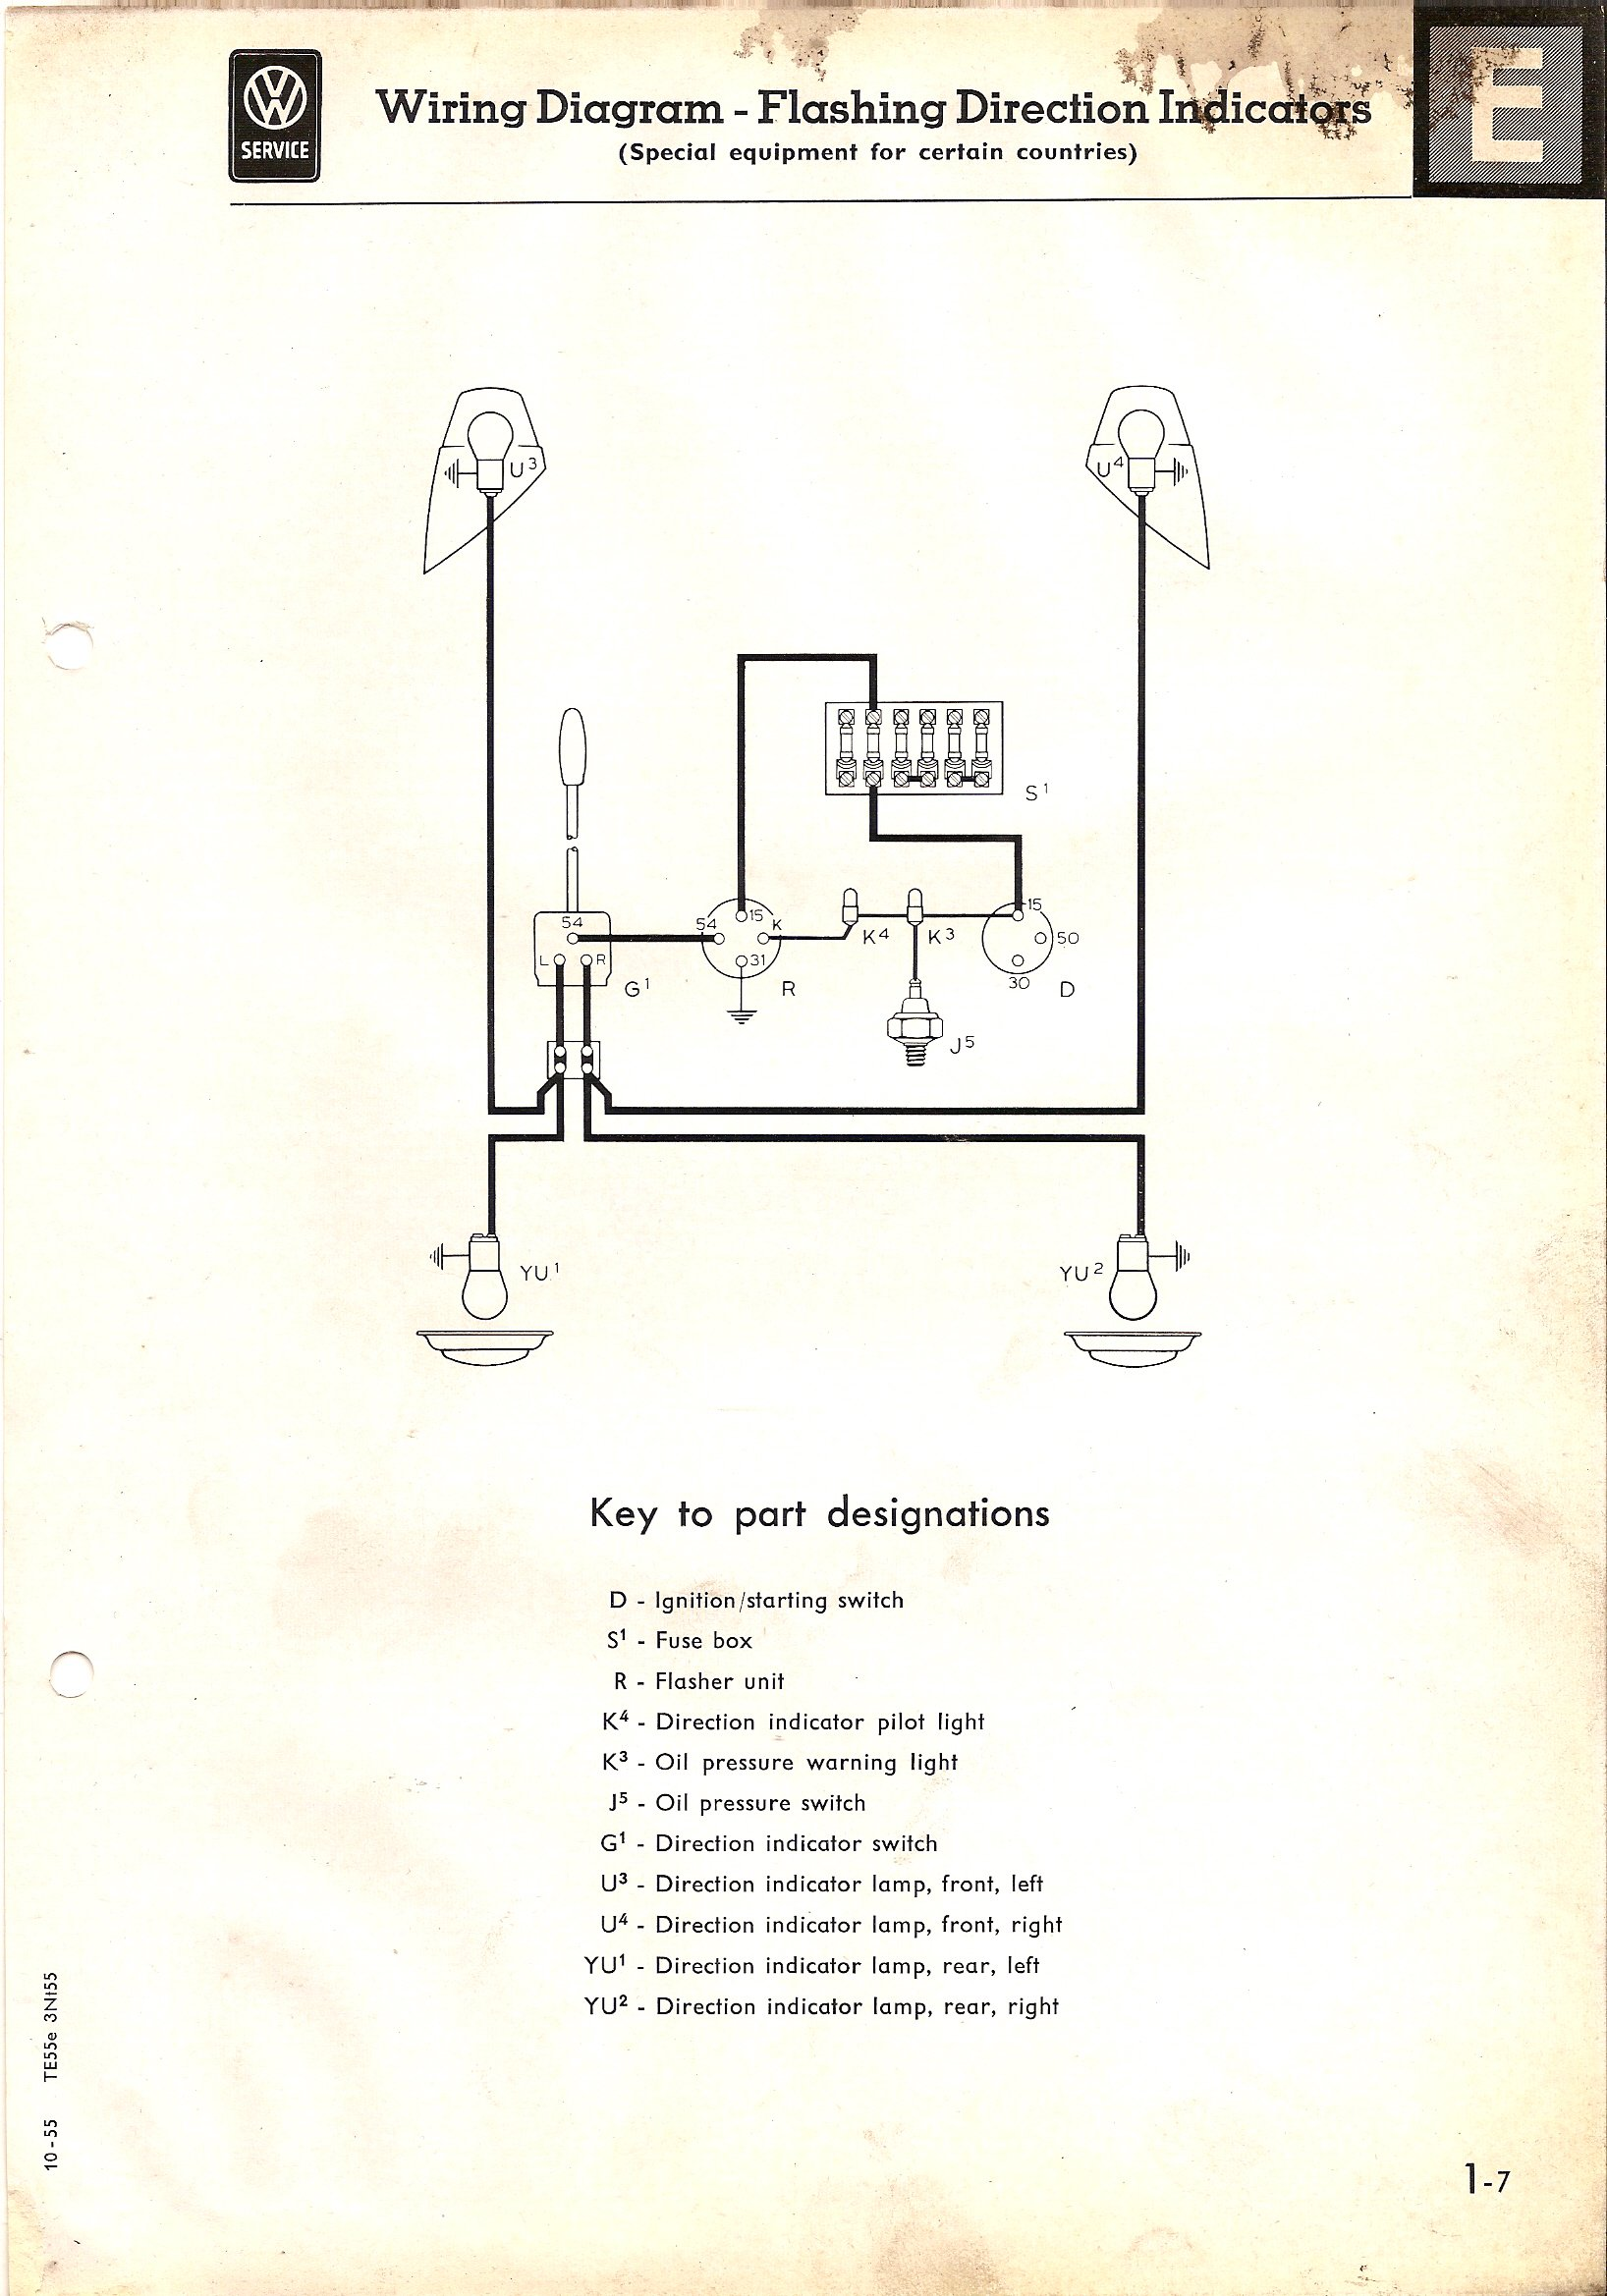 1966 corvette turn signal wiring diagram for 13 pin trailer plug thesamba com type 2 diagrams